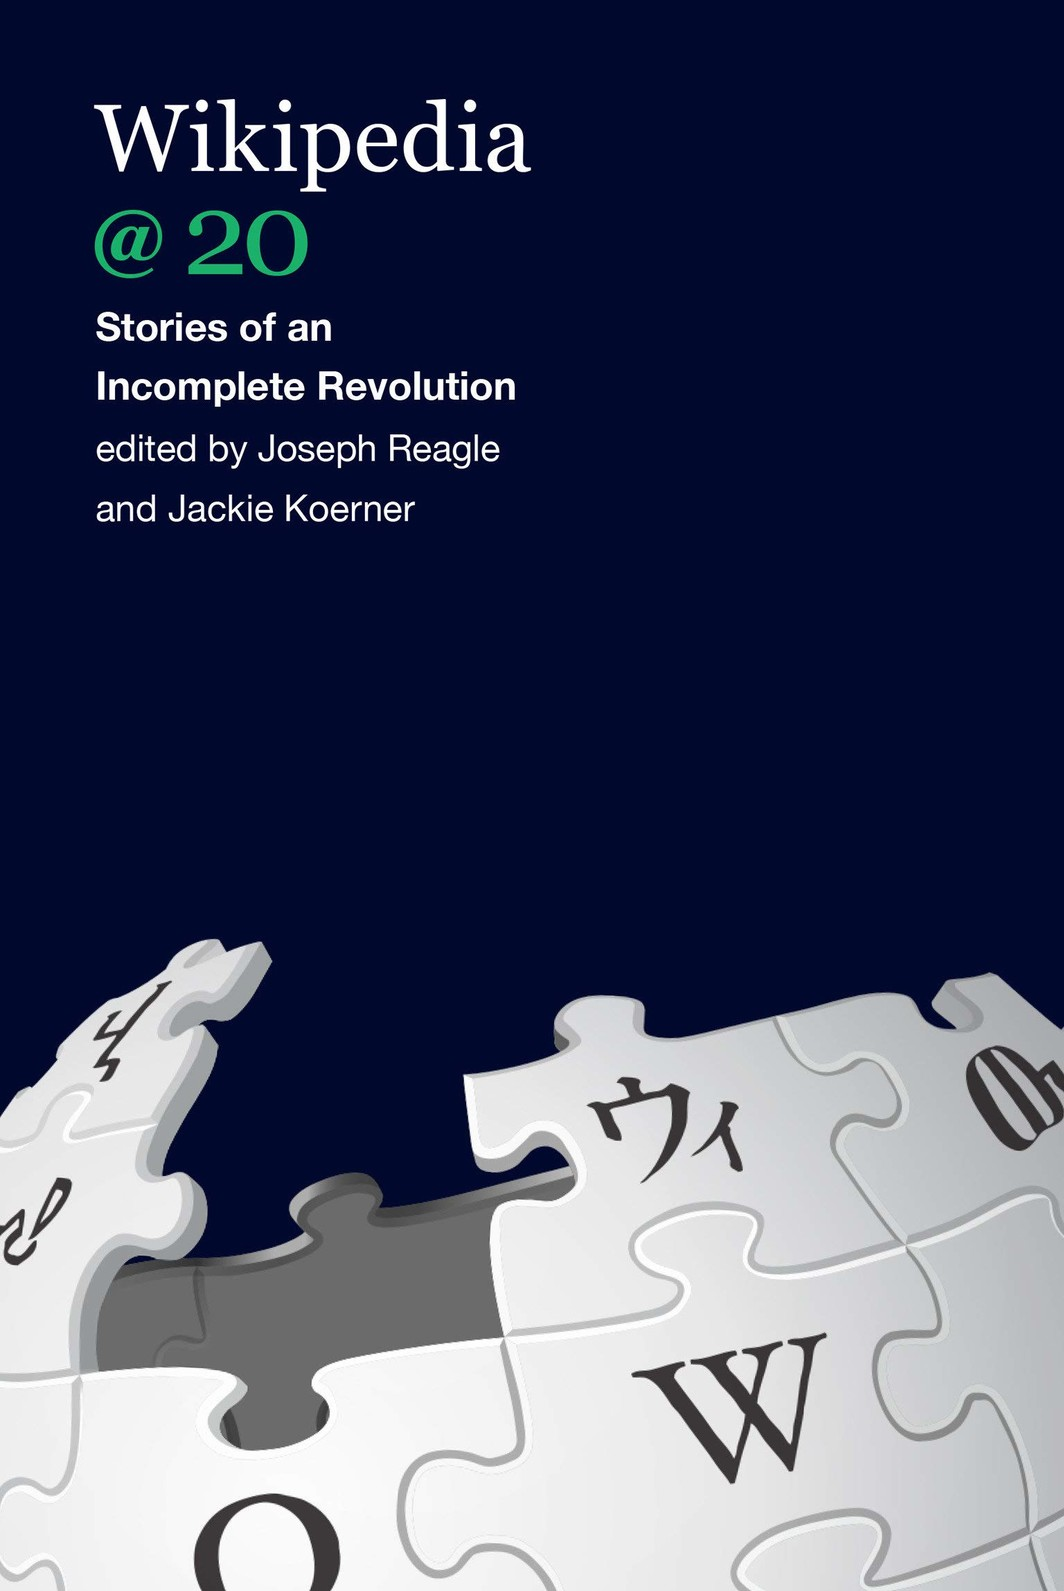 The cover of Wikipedia @ 20: Stories of an Incomplete Revolution